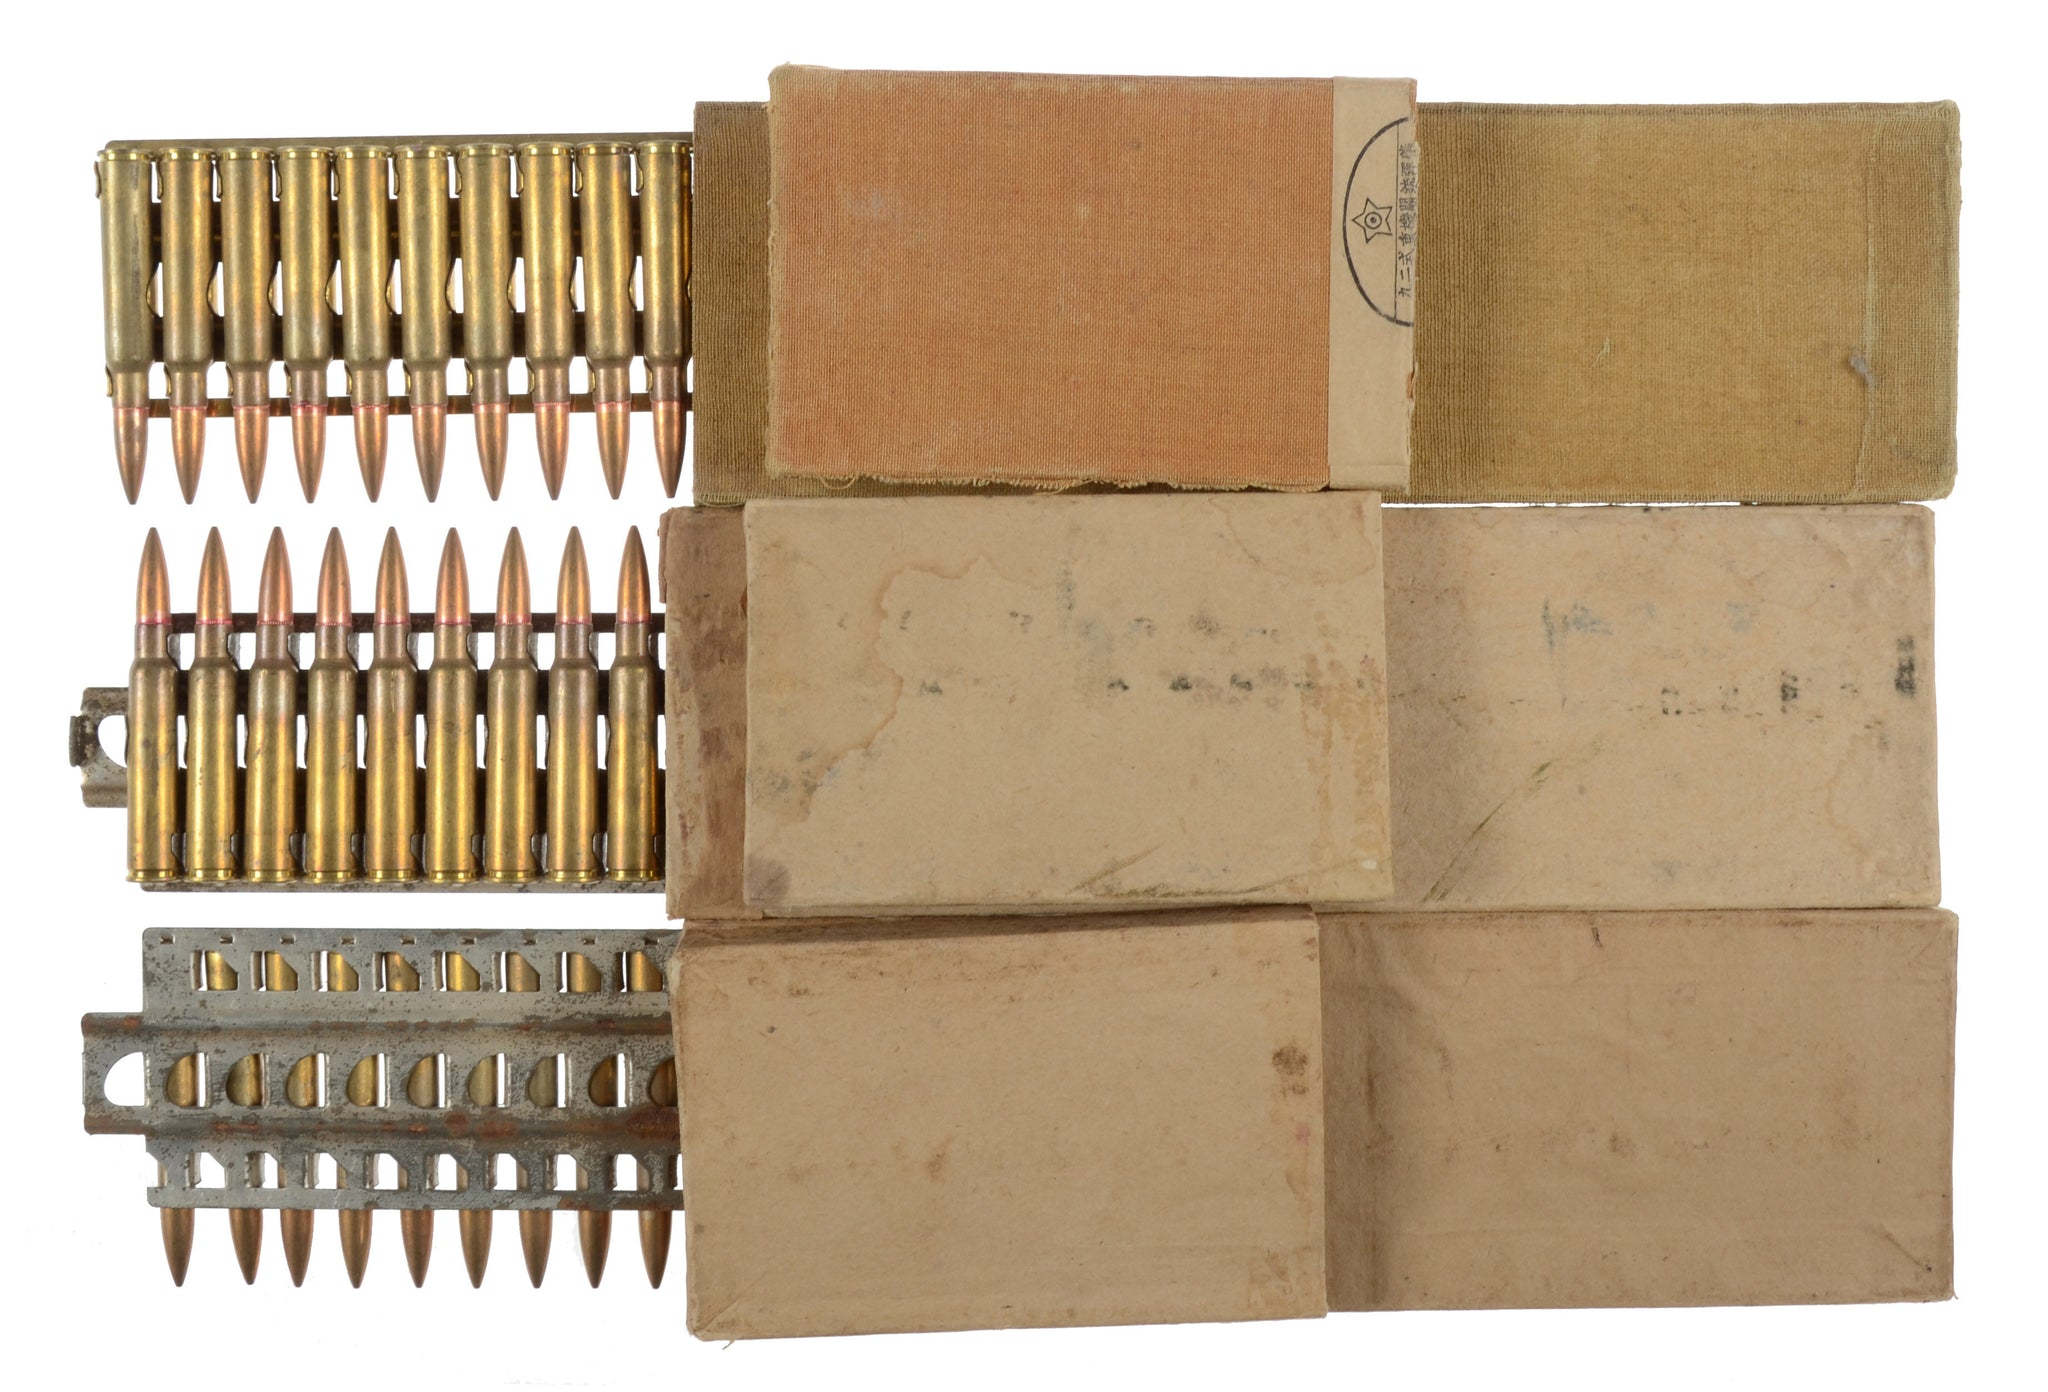 7.7MM JAPANESE MG AMMUNITION